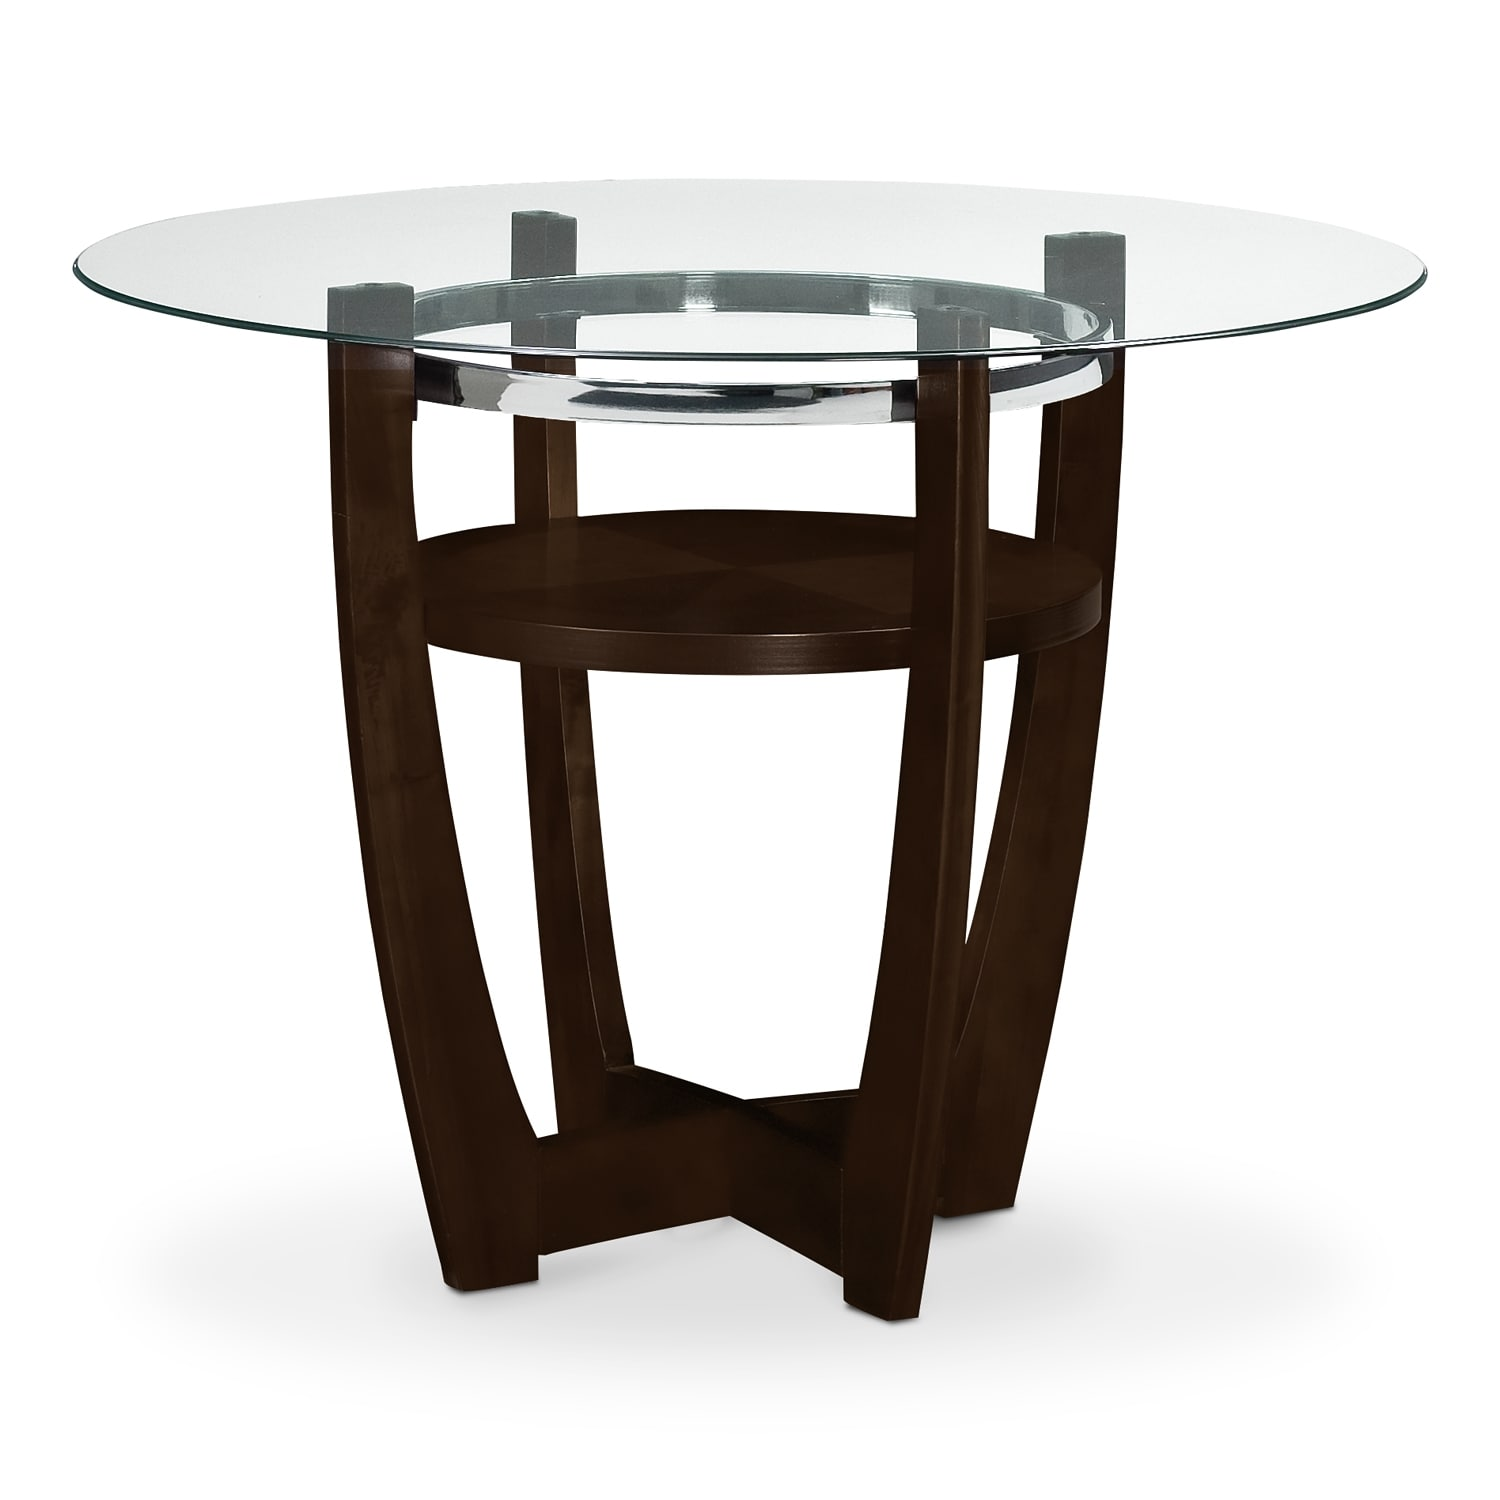 American signature furniture alcove ii dining room counter height table - Height dining room table ...